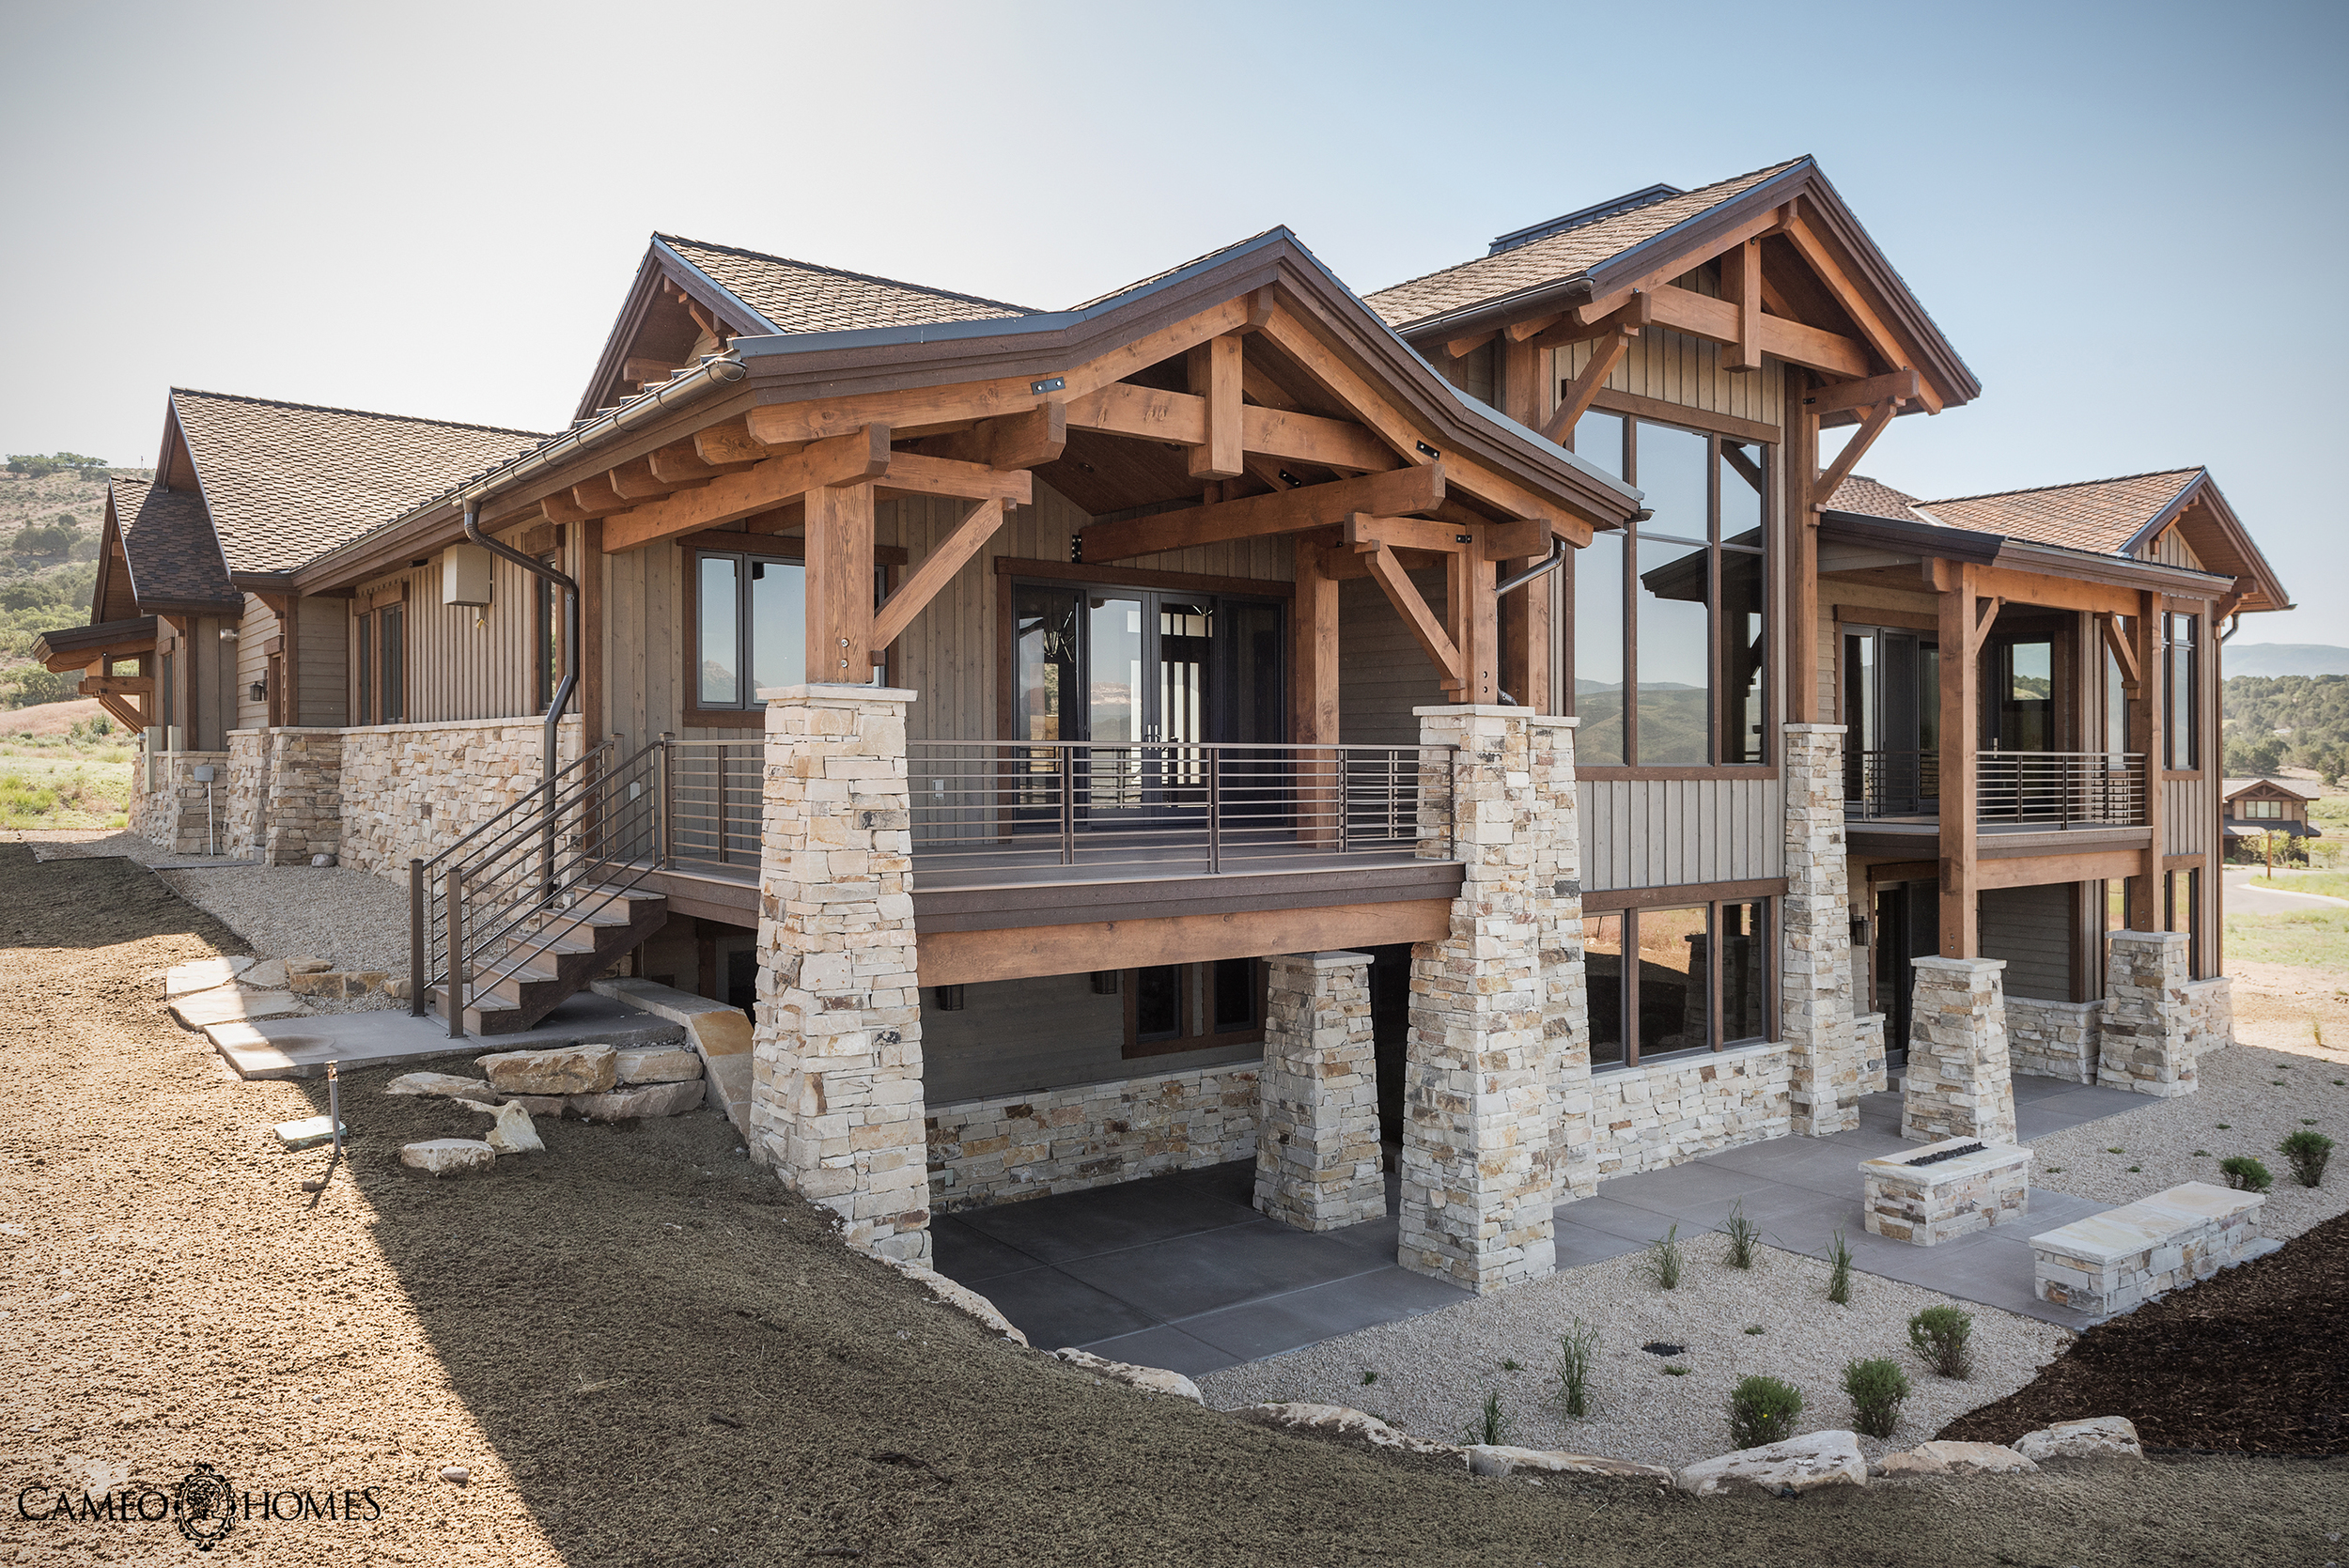 Built by Cameo Homes Inc. in Red Ledges, Heber, Utah.